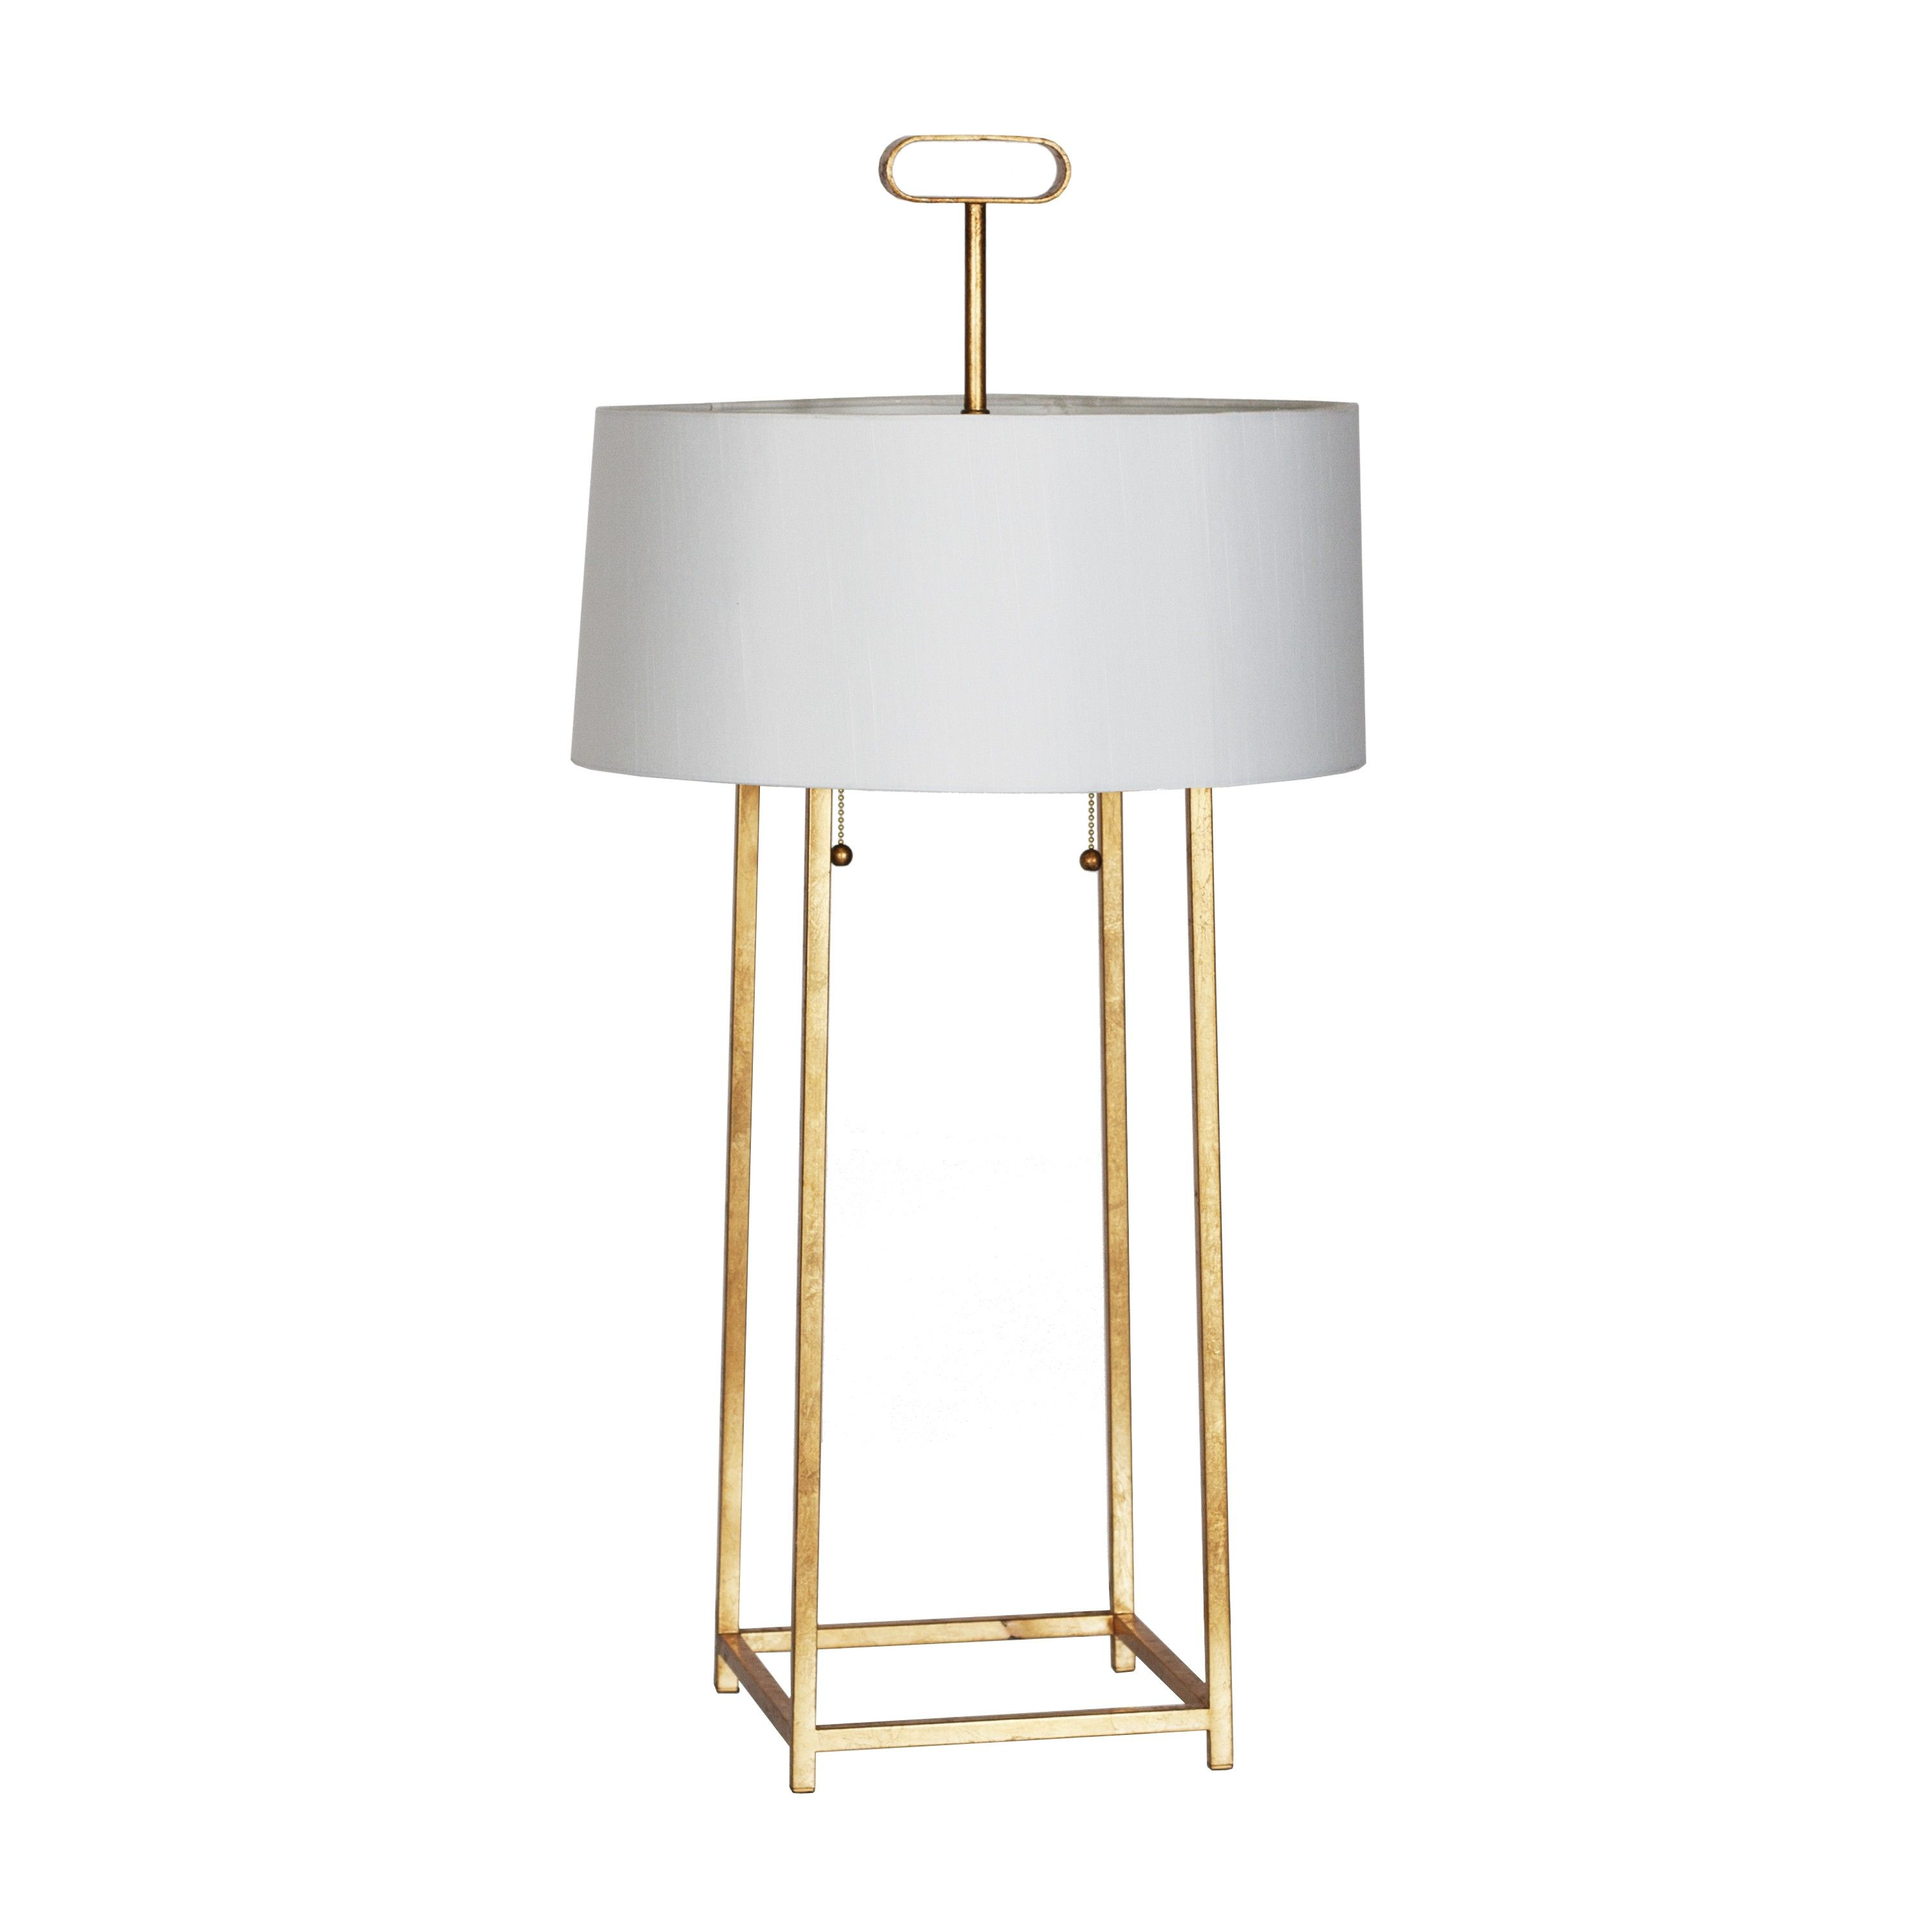 Mondo G Gold Leaf Iron Lamp With Pull Chain 16 5